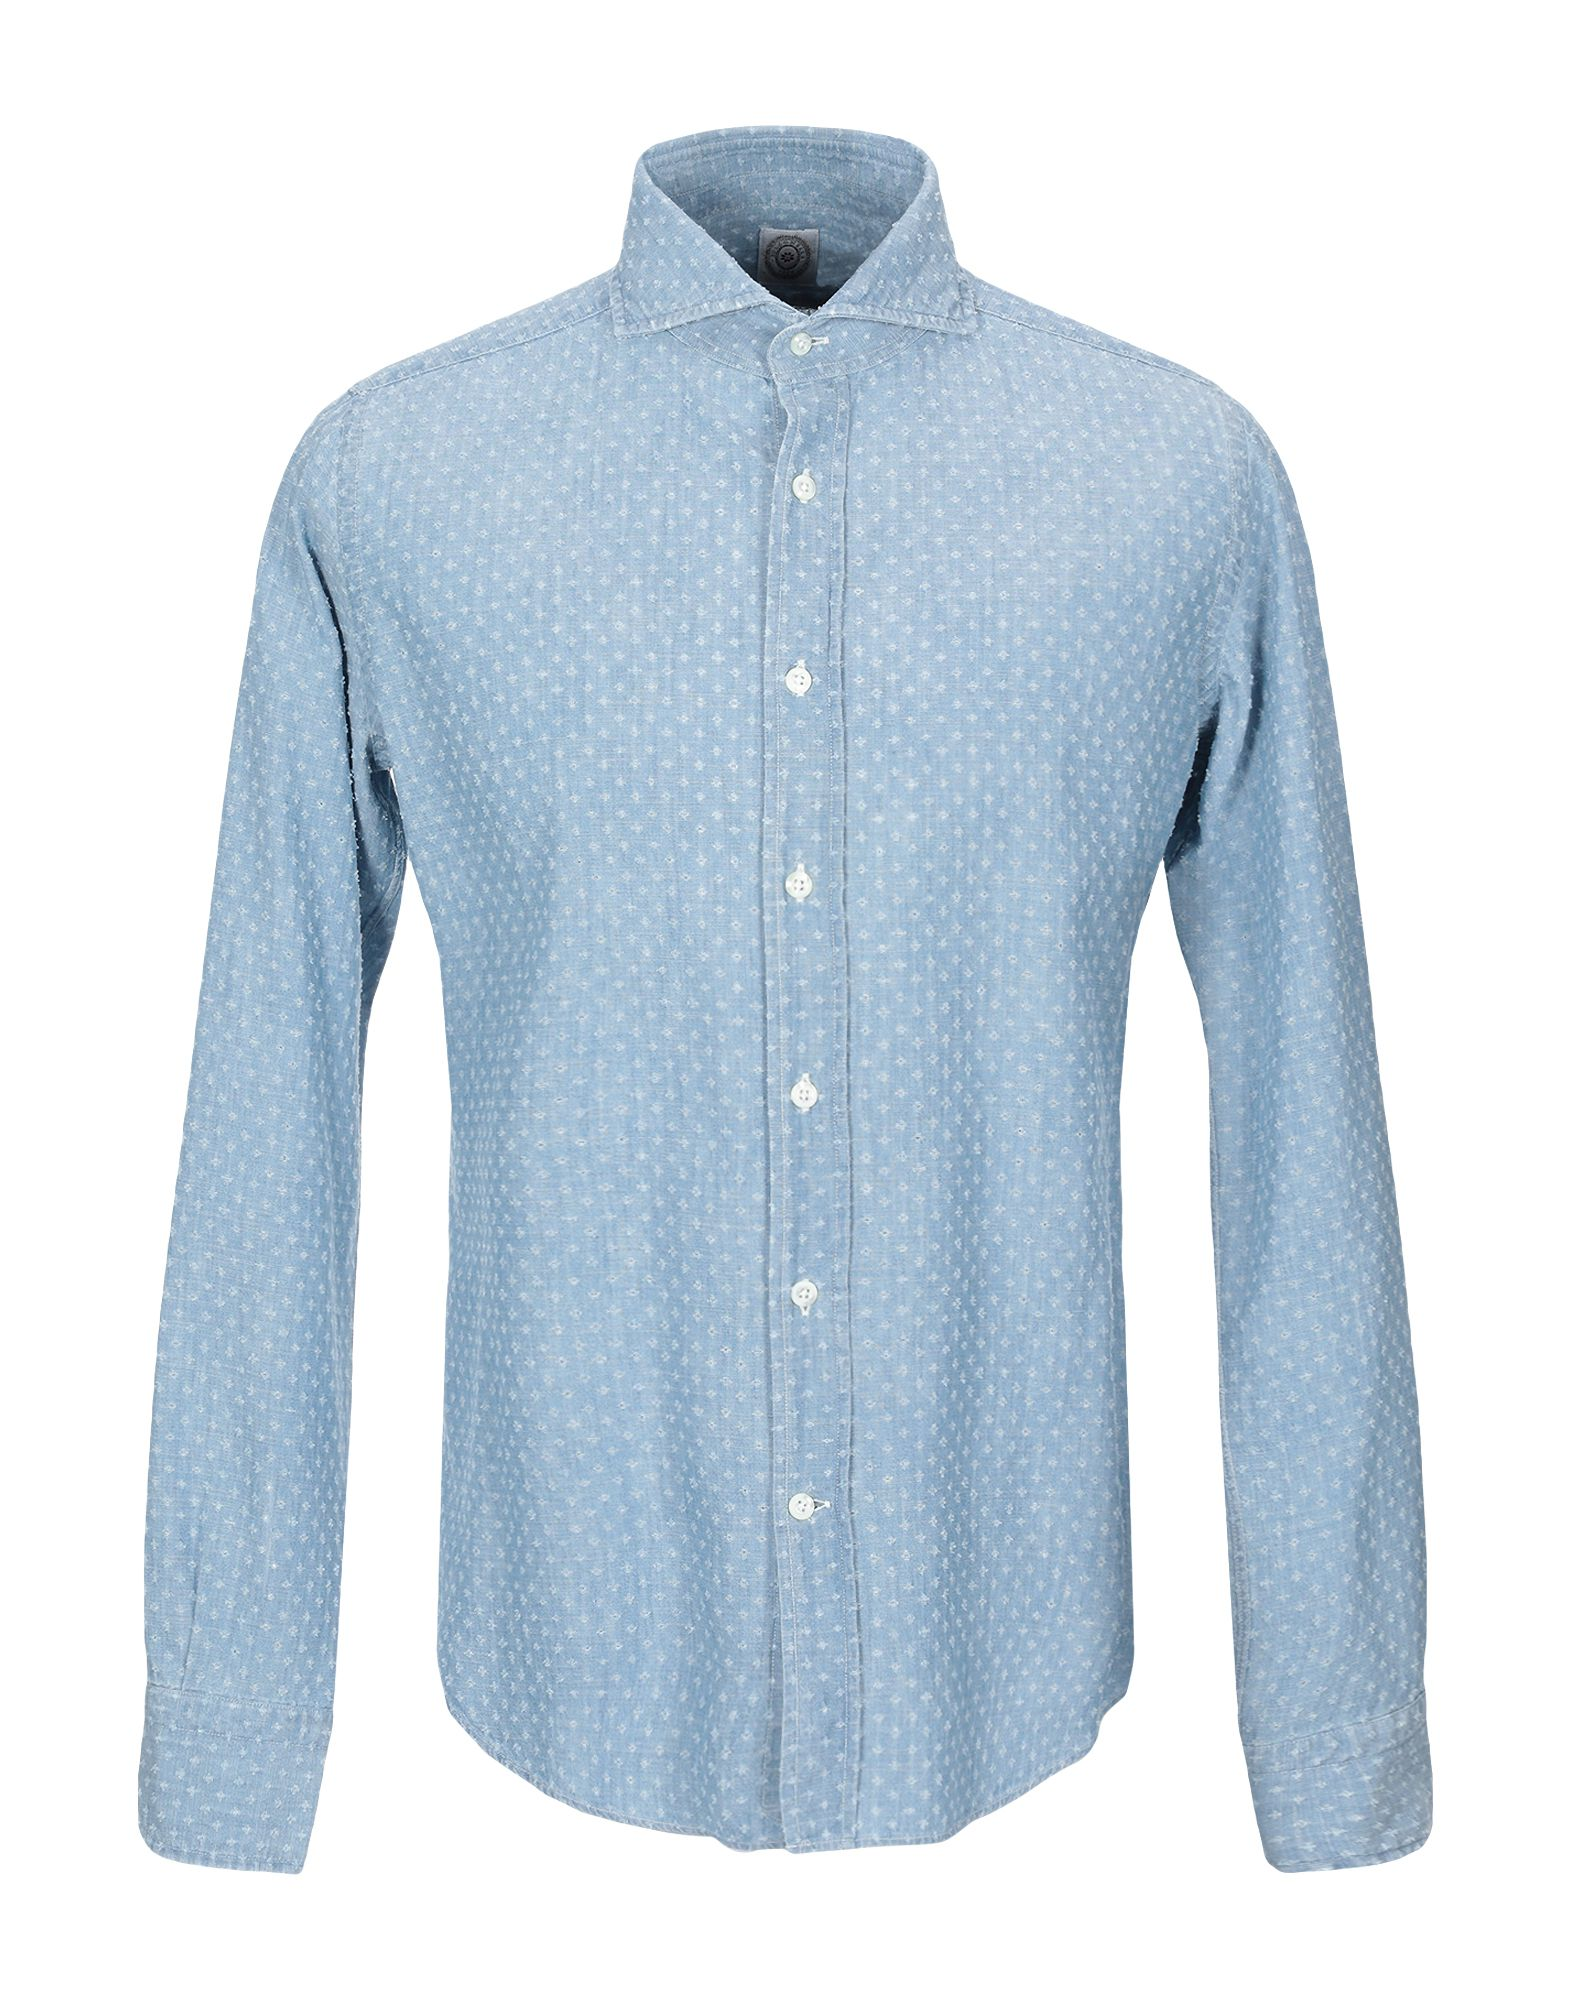 BOLZONELLA 1934 Shirts in Sky Blue